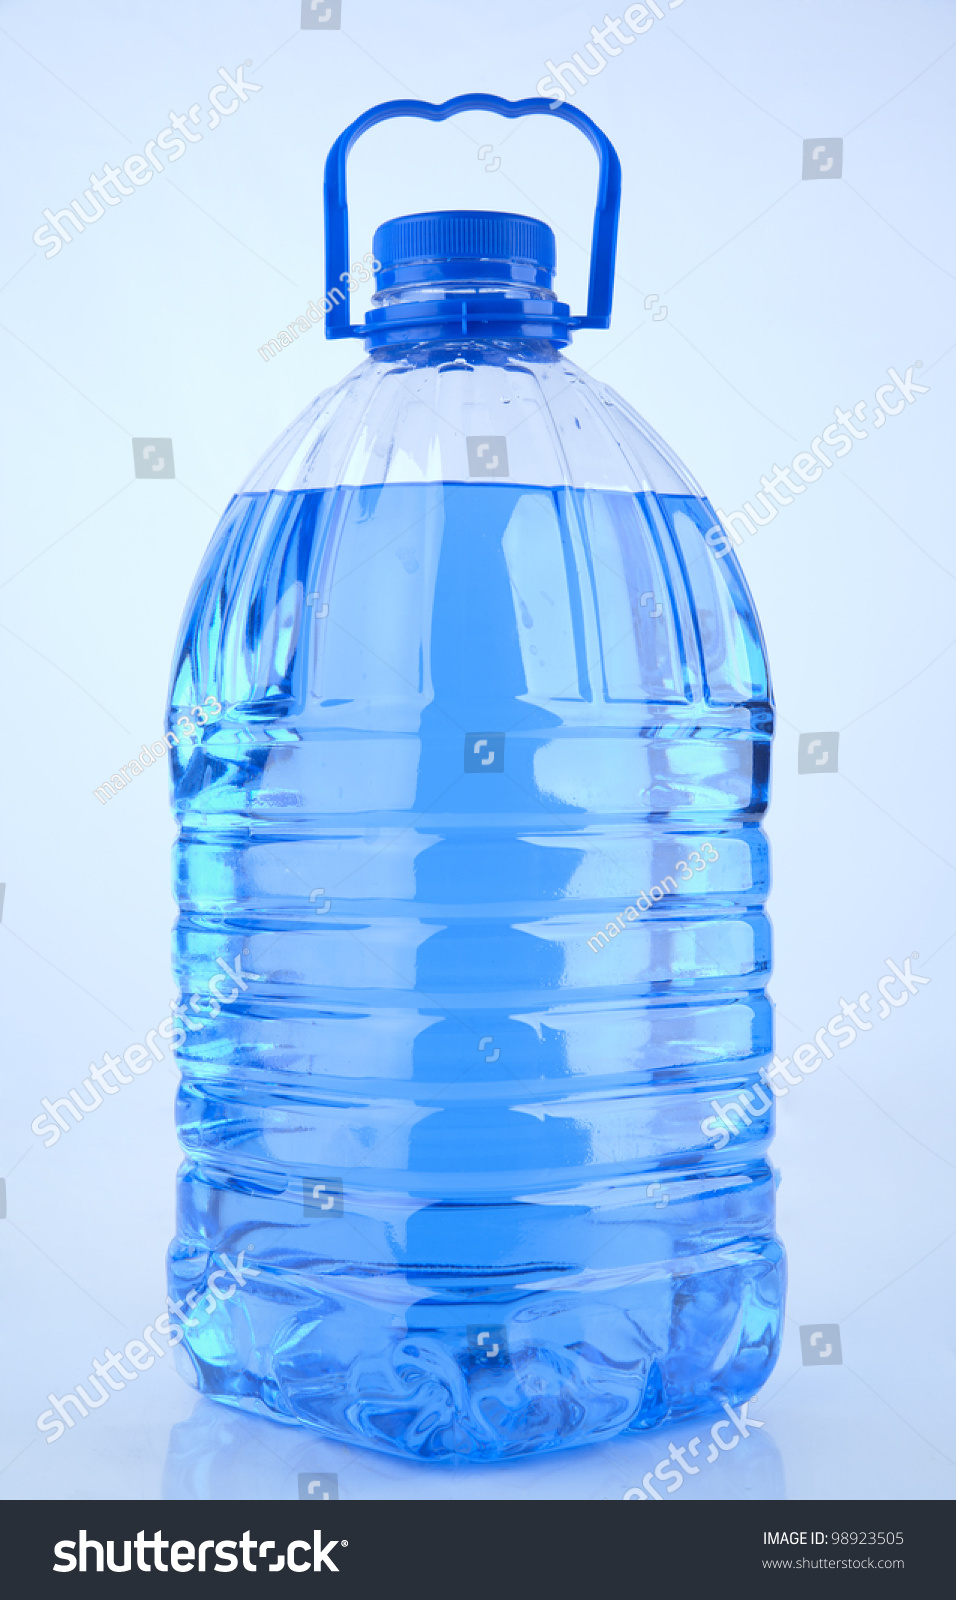 Windshield Washer Fluid Isolated On White Background Plastic Blank Container Filled With Blue Liquid Stock Photo 98923505 : Shutterstock